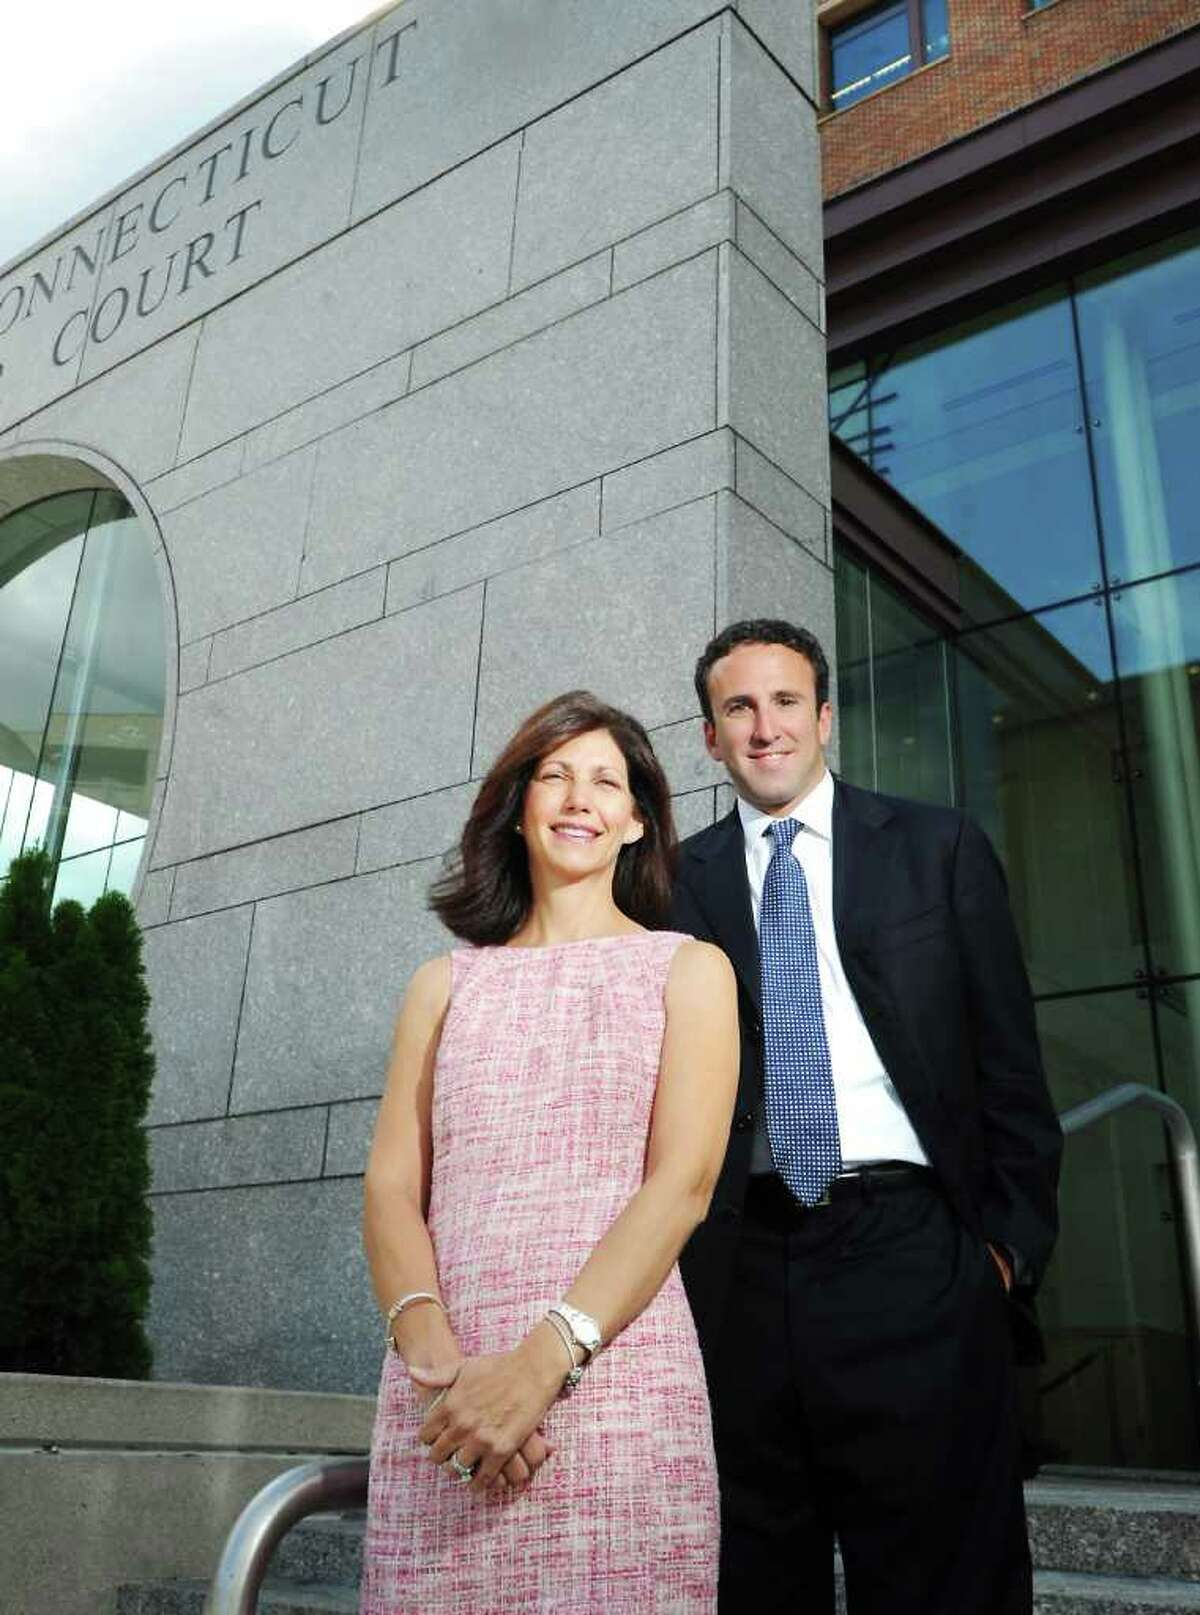 Karen Kaiser stands with her attorney Mark Sherman in front of state Superior Court in Stamford, Conn. on Friday September 10, 2010. Kaiser's divorce lawsuit helped bring down Pequot Capital Management, the Wilton company that managed billions of dollars and was once among the world's biggest hedge funds.